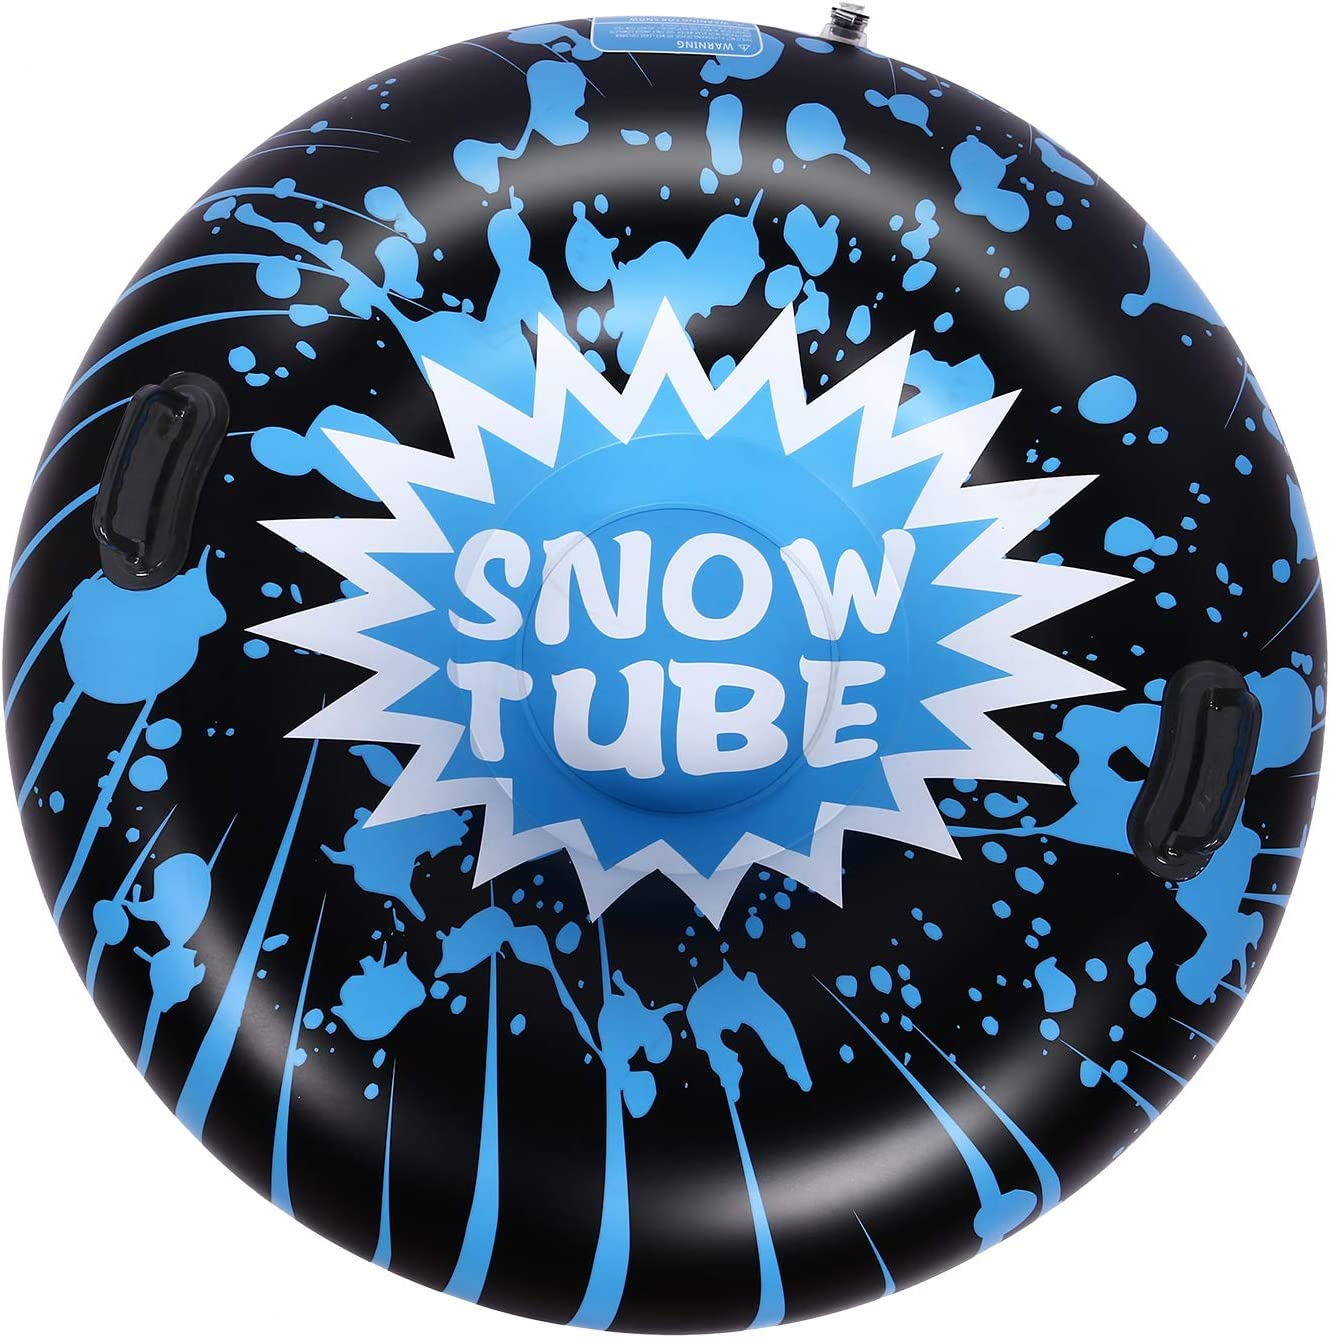 Brace Master Snow Tube - 47 Inch Inflatable Heavy Duty Snow Sled Tube 6mm Thickness Material for Highly Tolerant Abrasion Great for Kids and Adults Ideal for Winter Fun